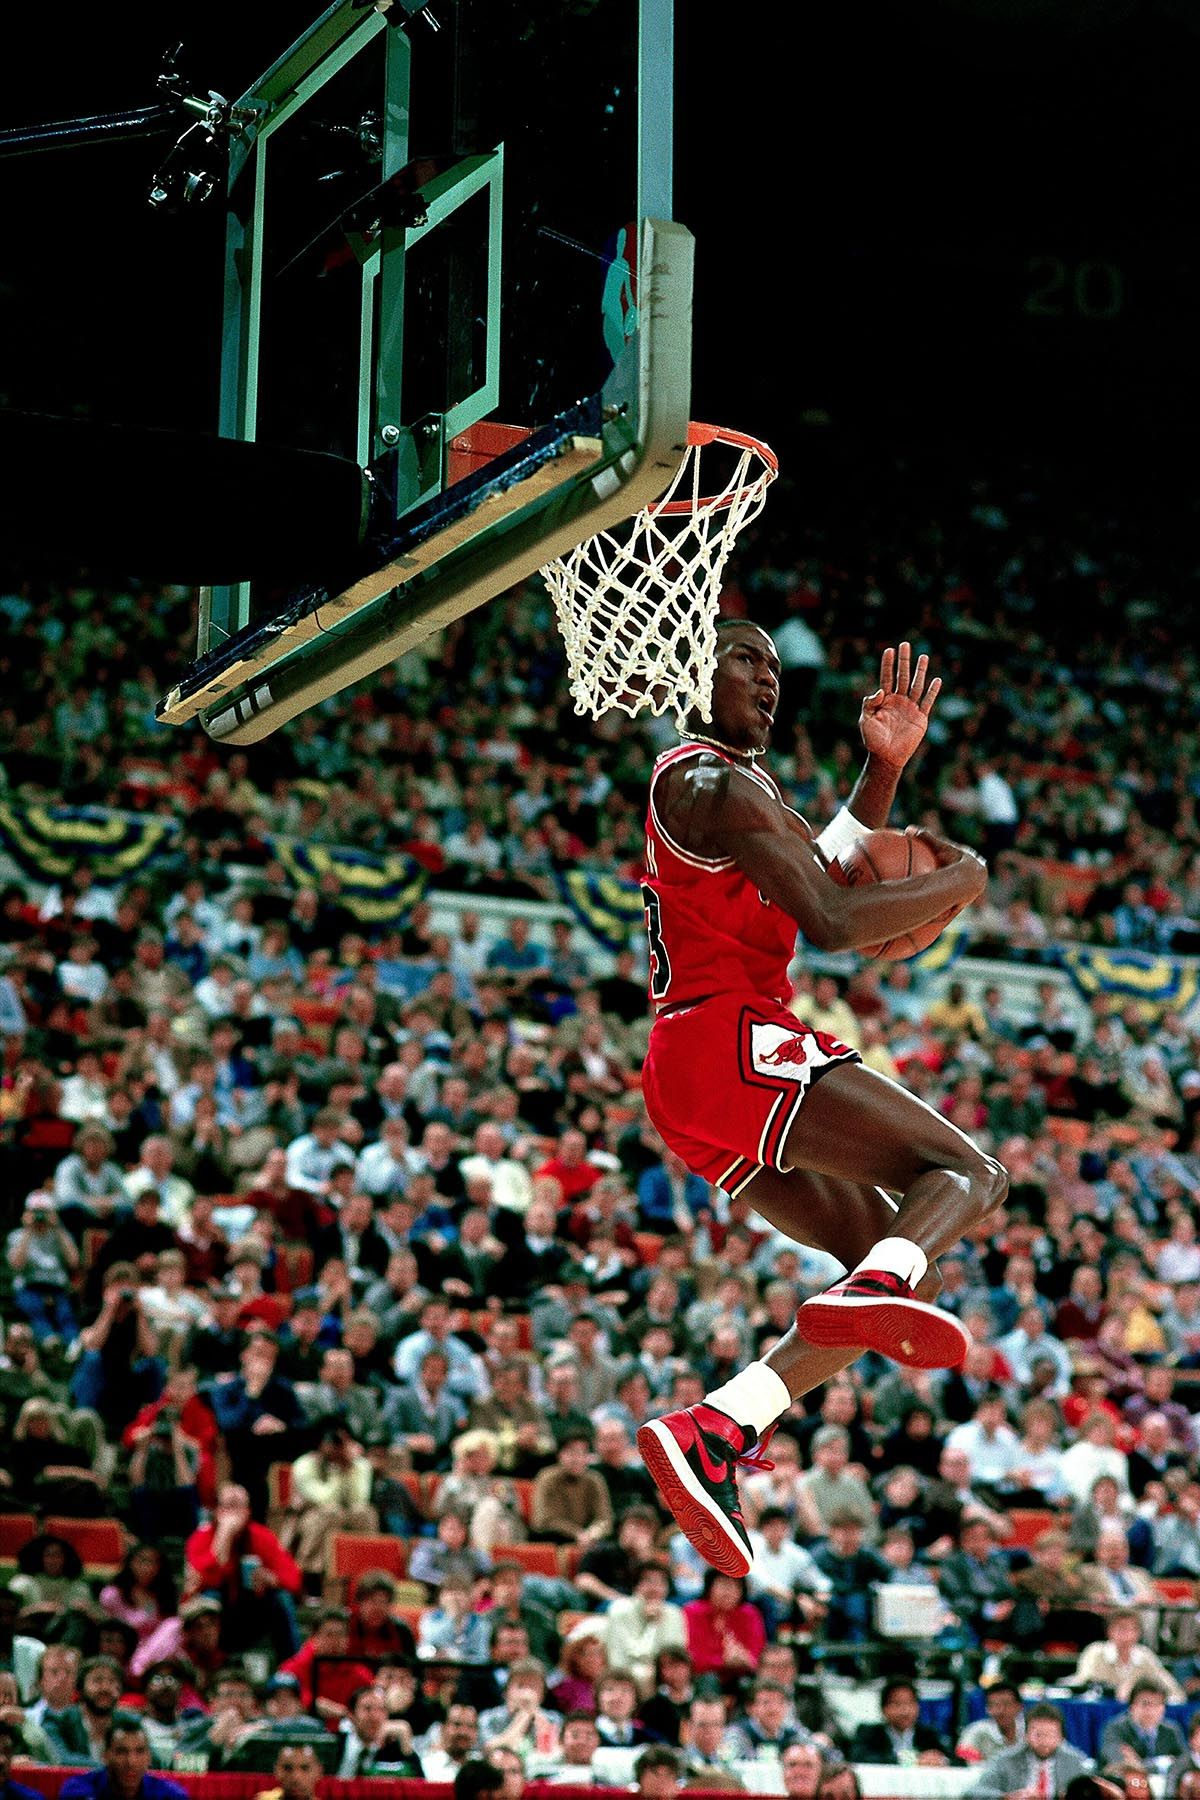 Michael Jordan All Star Slam Dunk Contest 1985 Brand Announces The Return